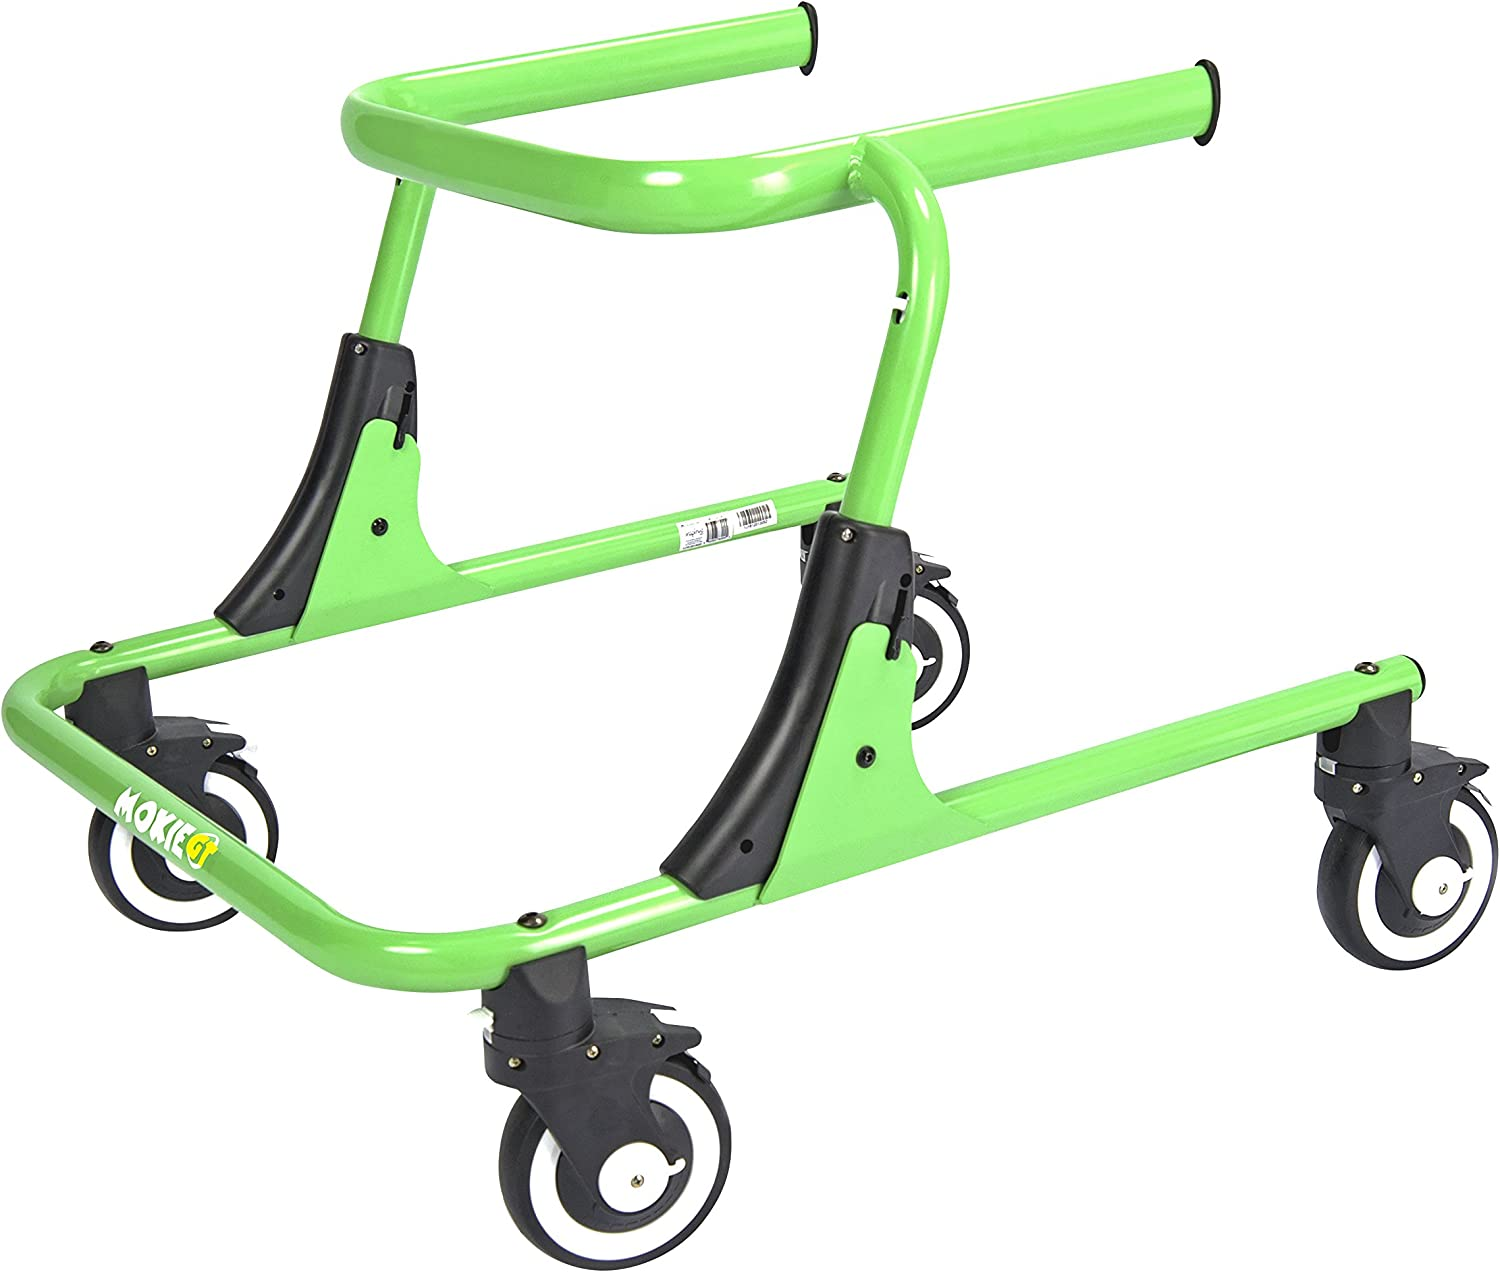 Inspired by Drive Moxie GT 4 years warranty Gait Trainer Green Ranking TOP1 Small Magic